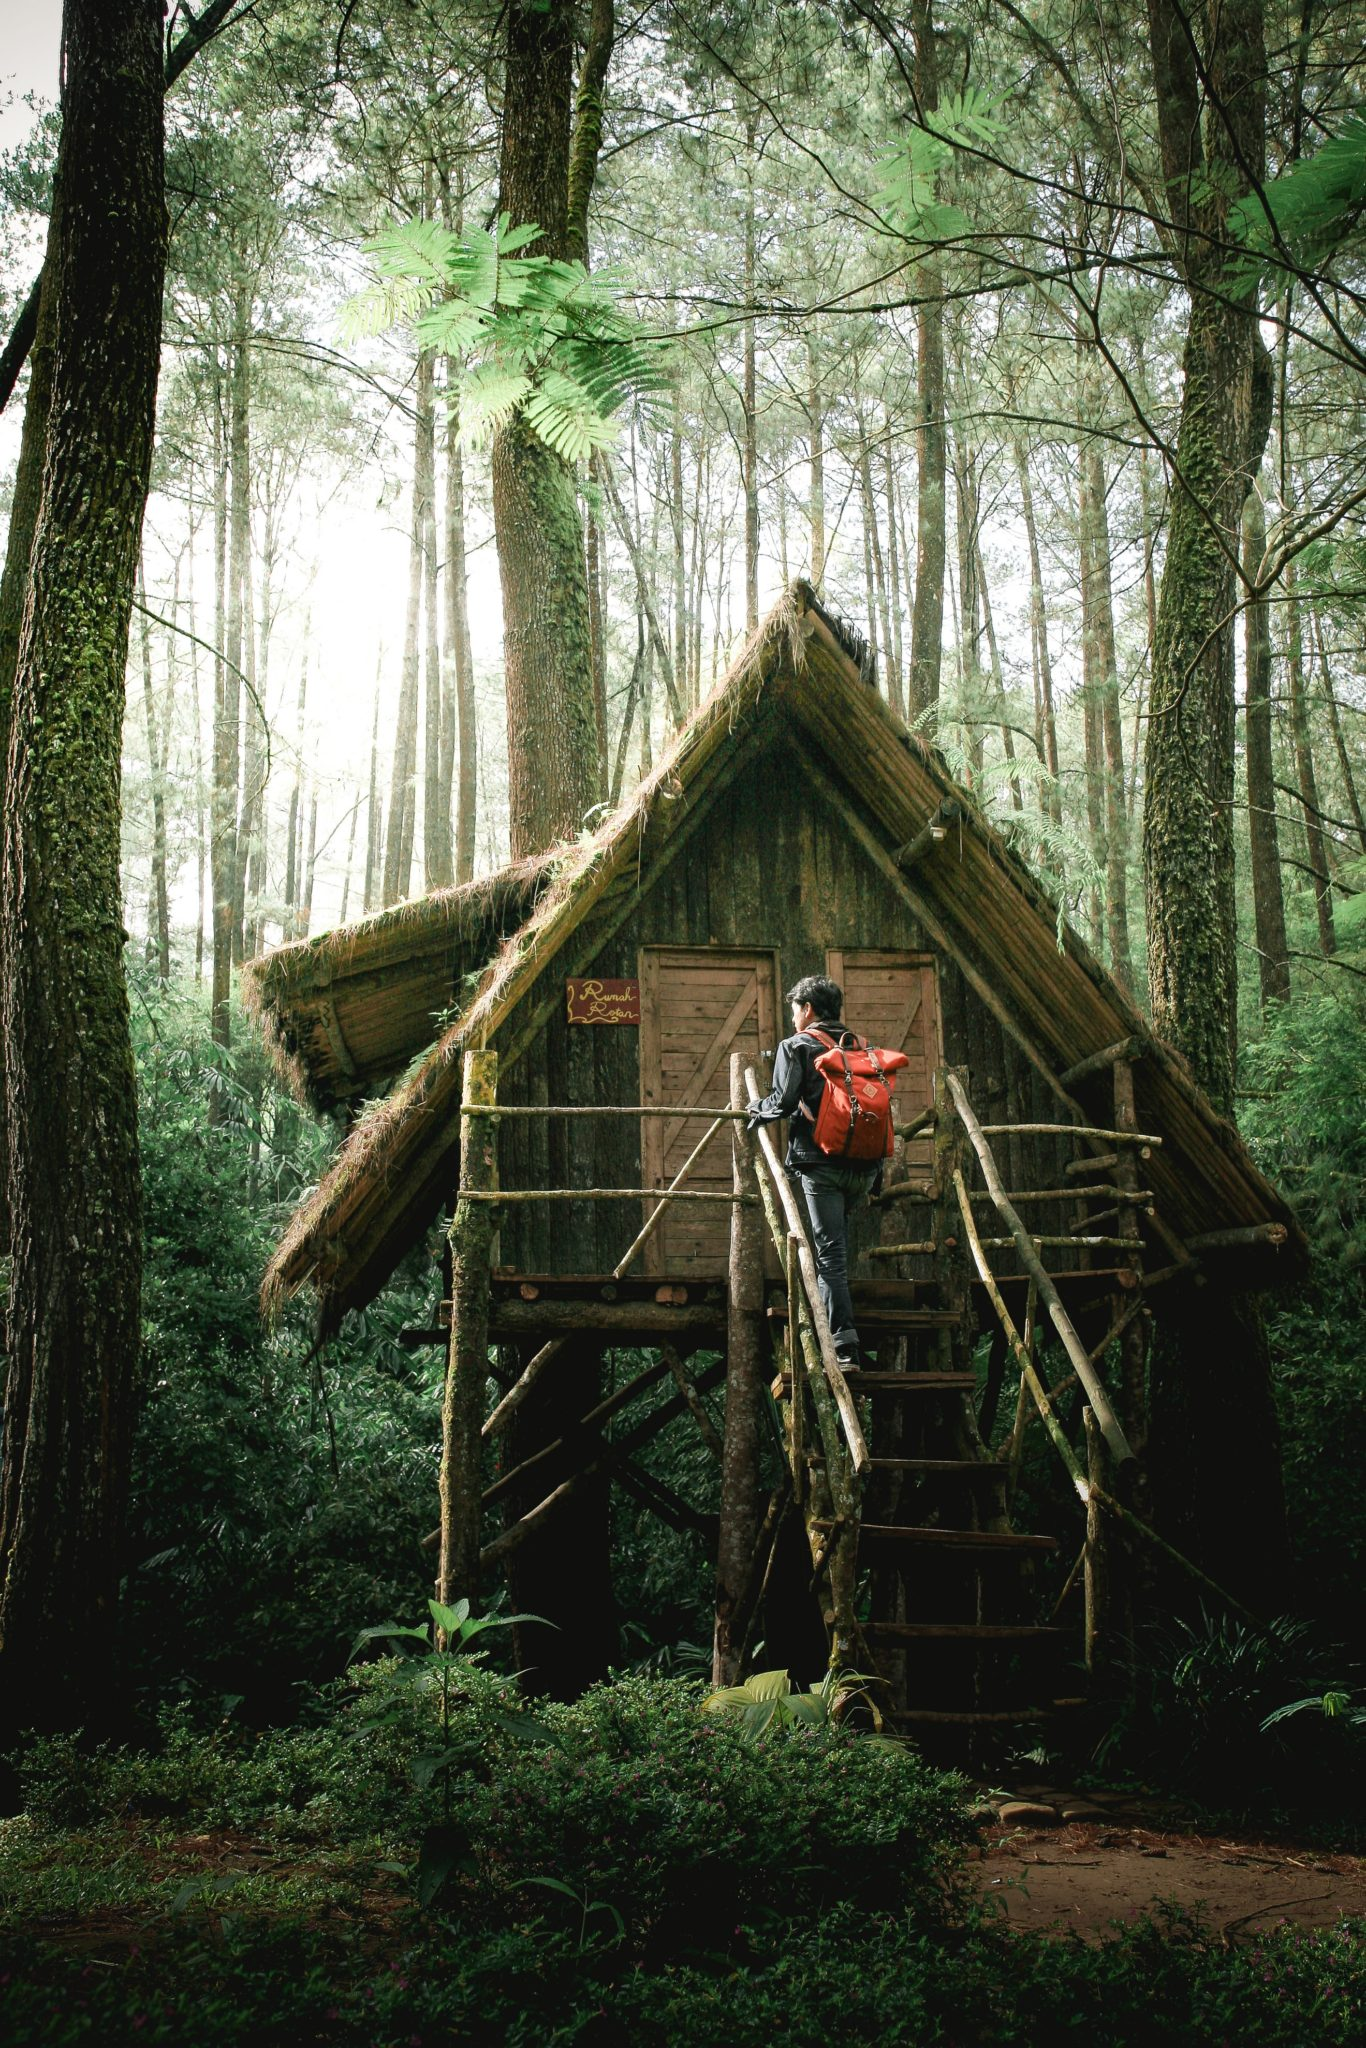 A guest entering a treehouse. Photo by KIMO on Unsplash